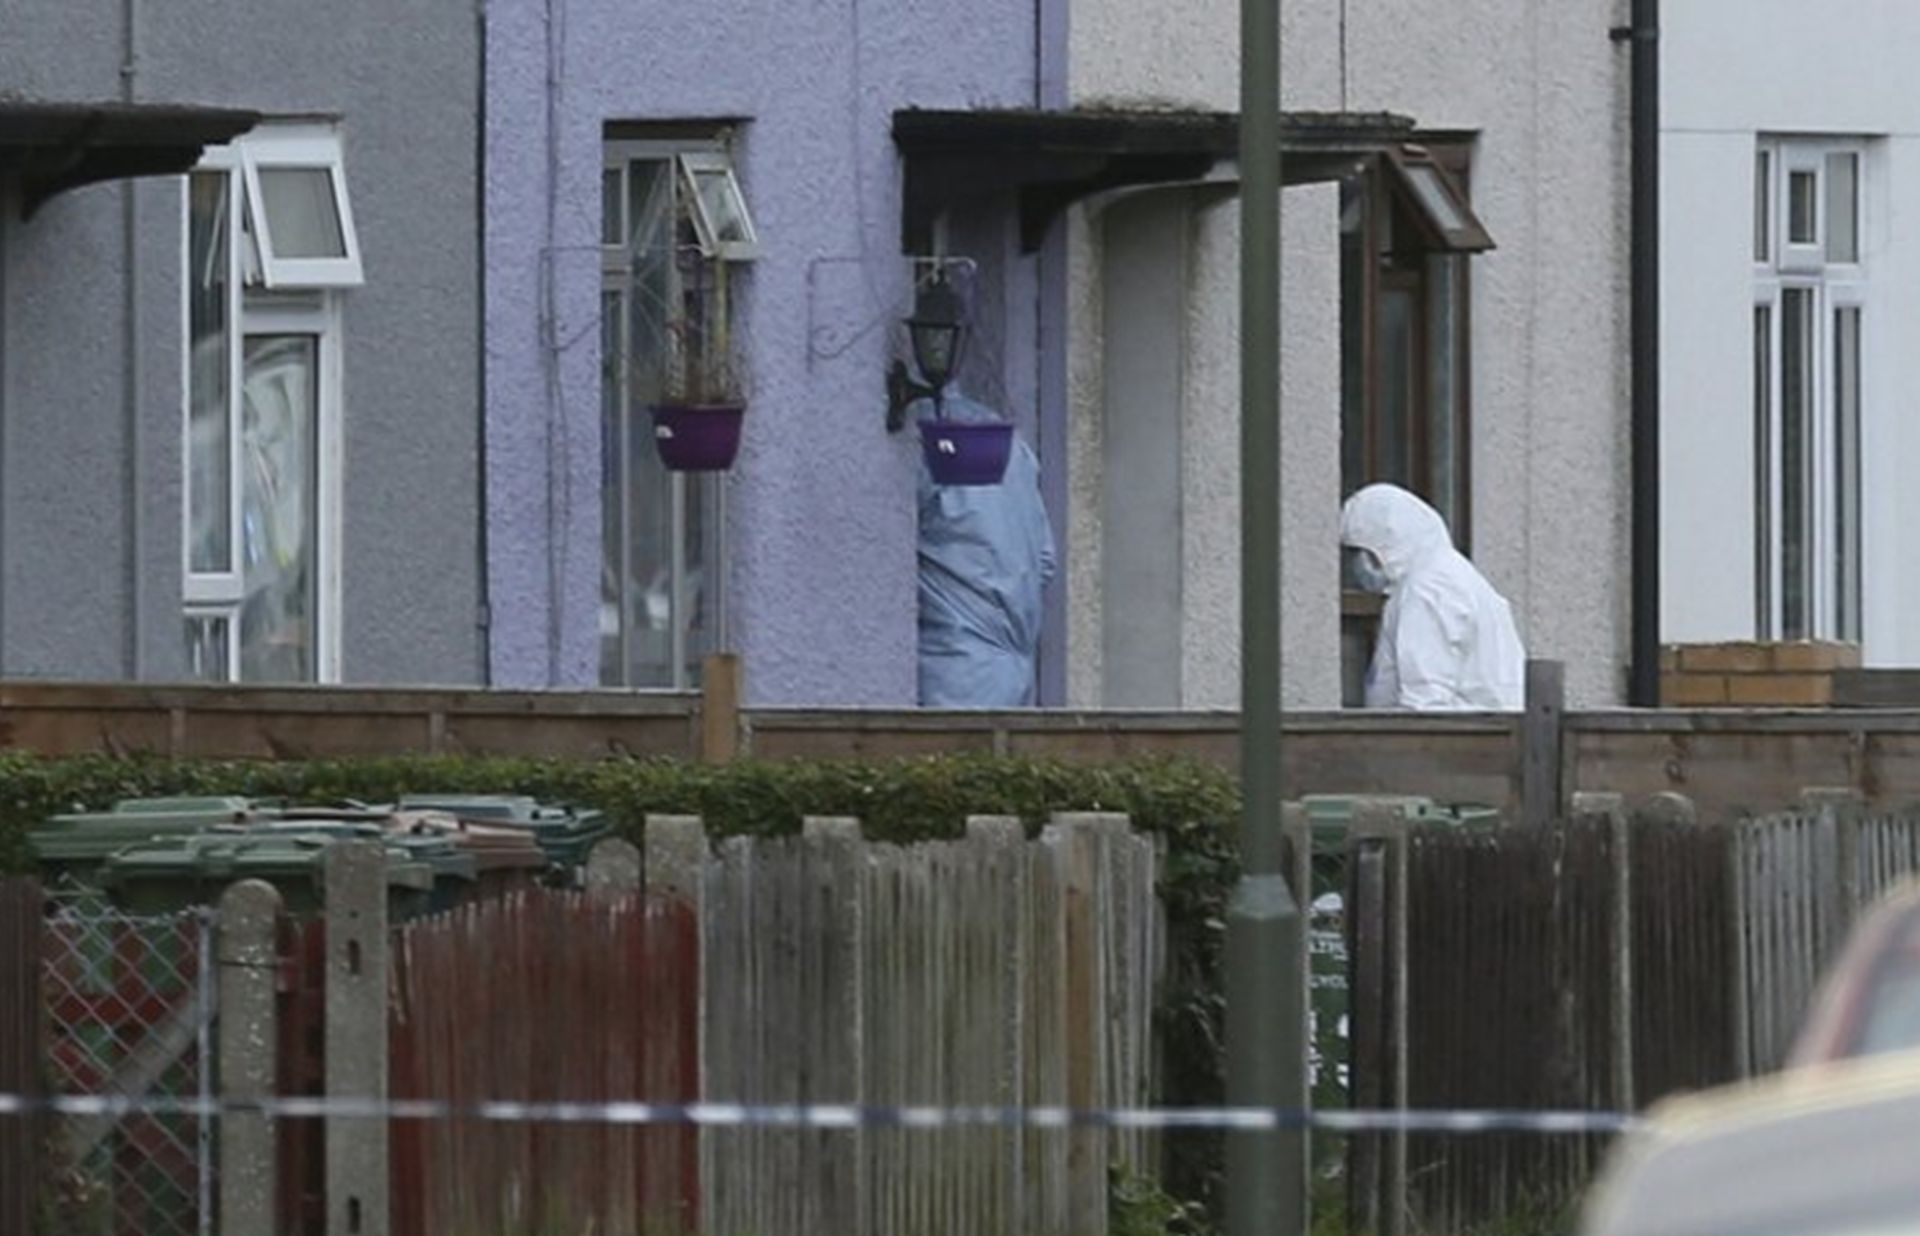 Police forensics officers enter a property in Sunbury-on-Thames on Saturday seeking evidence connected to Friday's subway bombing in London. AP NEWSWIRE/Johnathan Brady, PA via AP